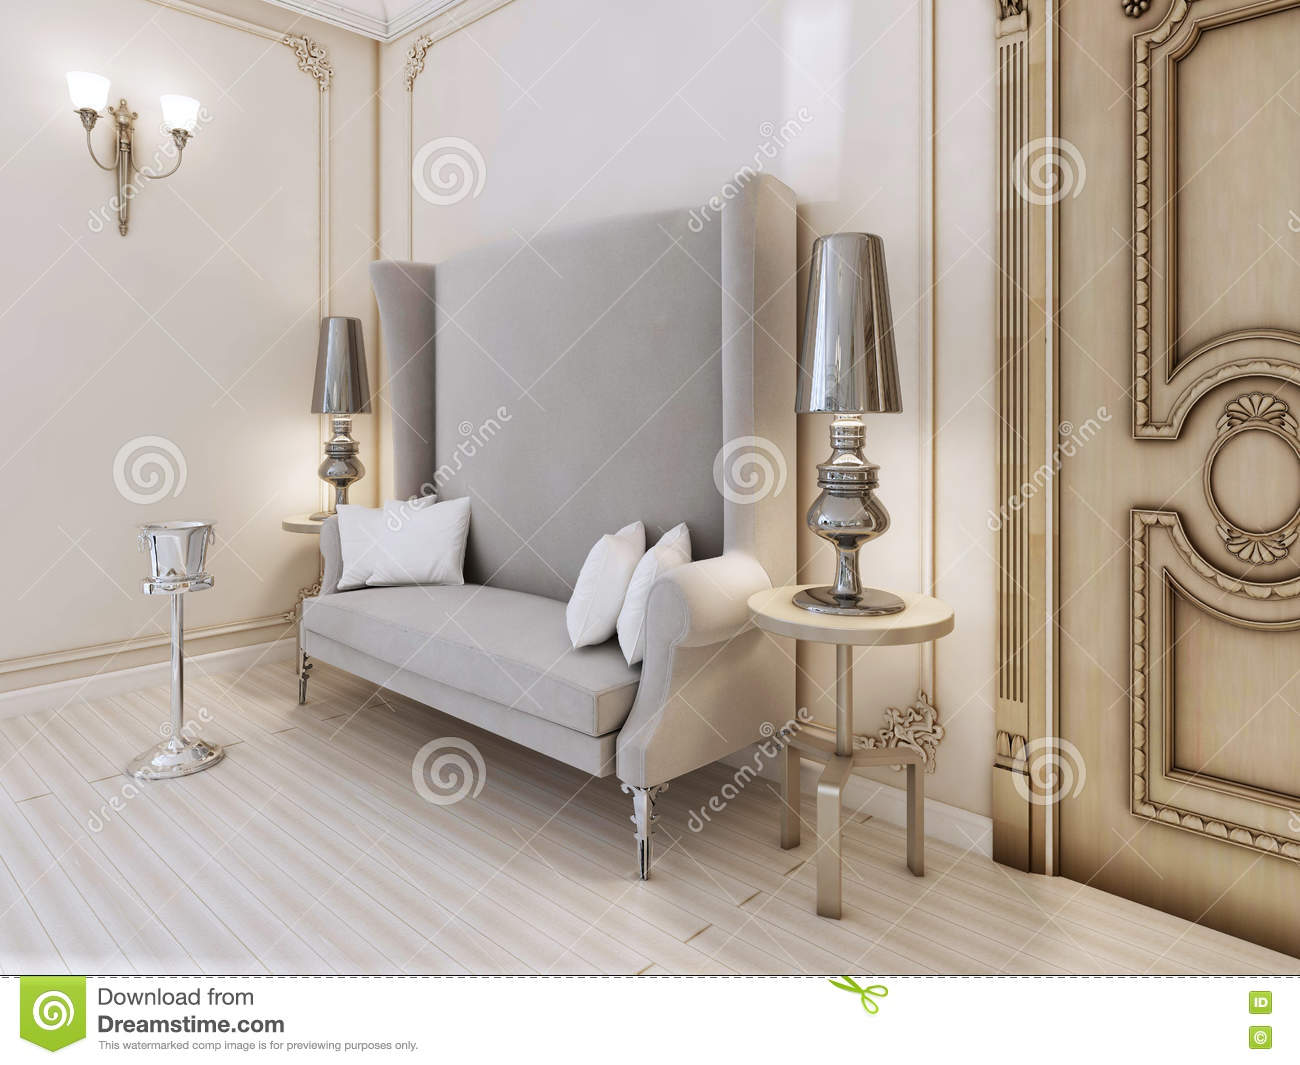 A Classic Designer Sofa With A High Back In The Bedroom